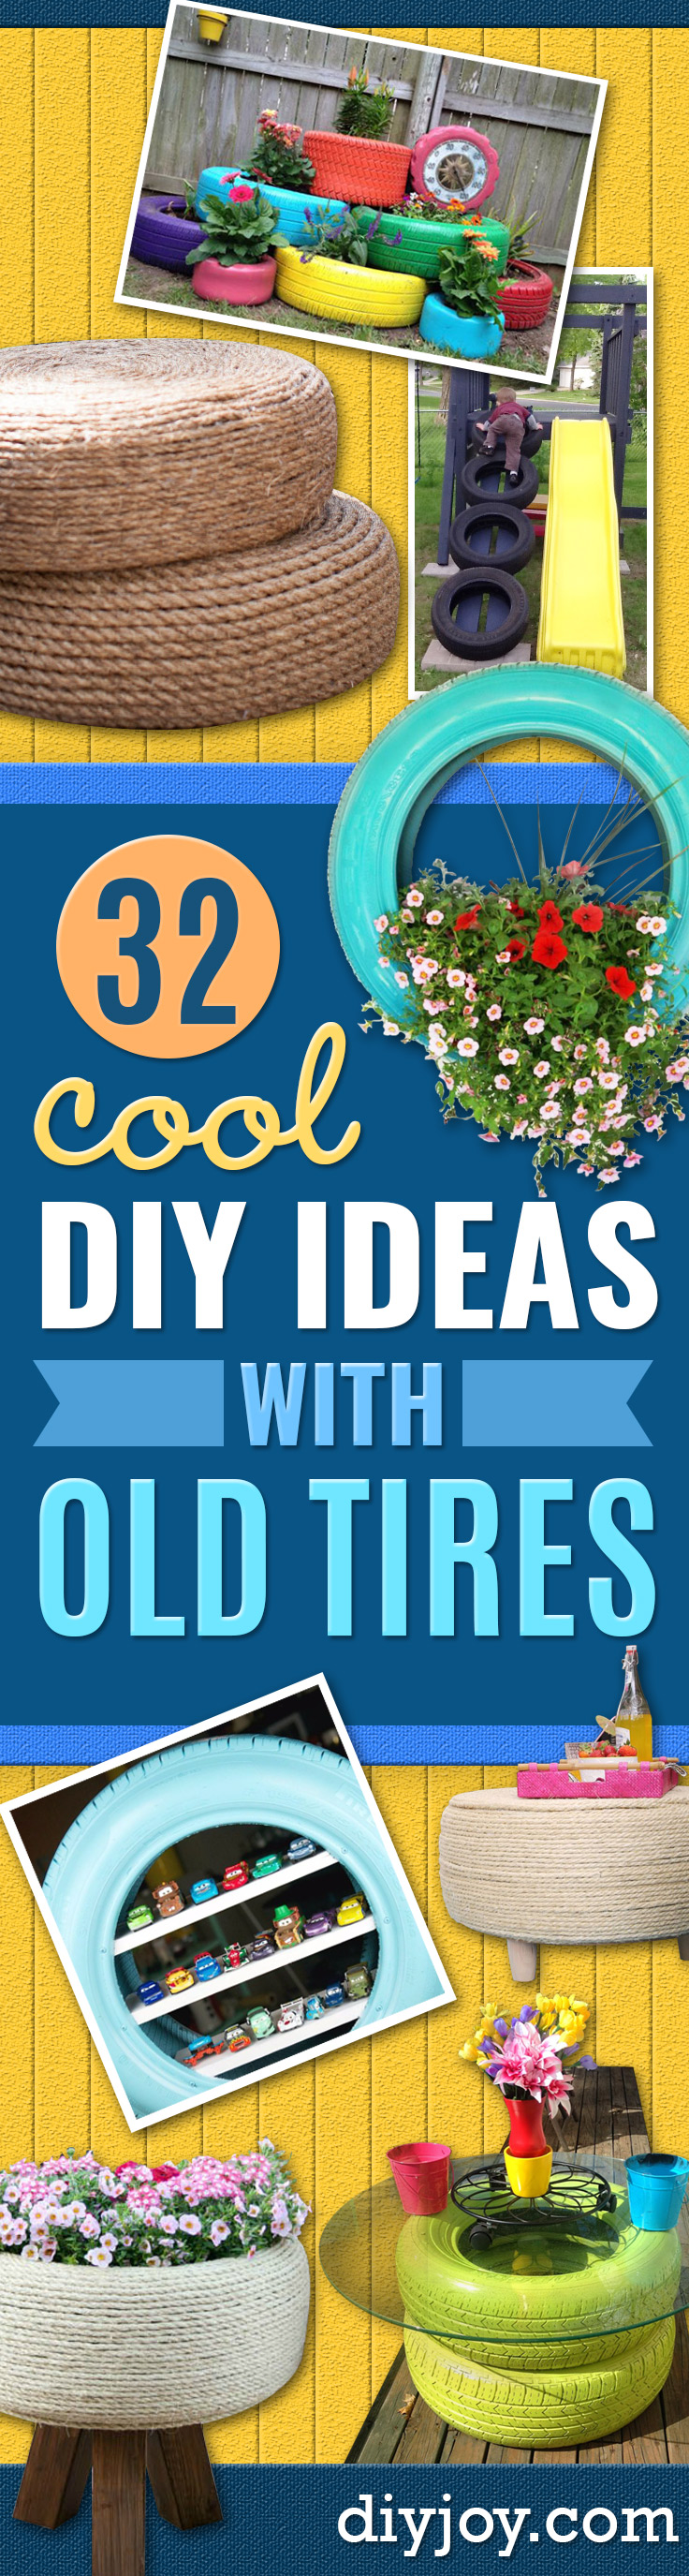 DIY Ideas With Old Tires - Rustic Farmhouse Decor Tutorials and Projects Made With An Old Tire - Easy Vintage Shelving, Wall Art, Swing, Ottoman, Seating, Furniture, Gardeing Ideas and Home Decor for Kitchen, Living Room, Bathroom and Backyard - Creative Country Crafts, Rustic Wall Art and Accessories to Make and Sell